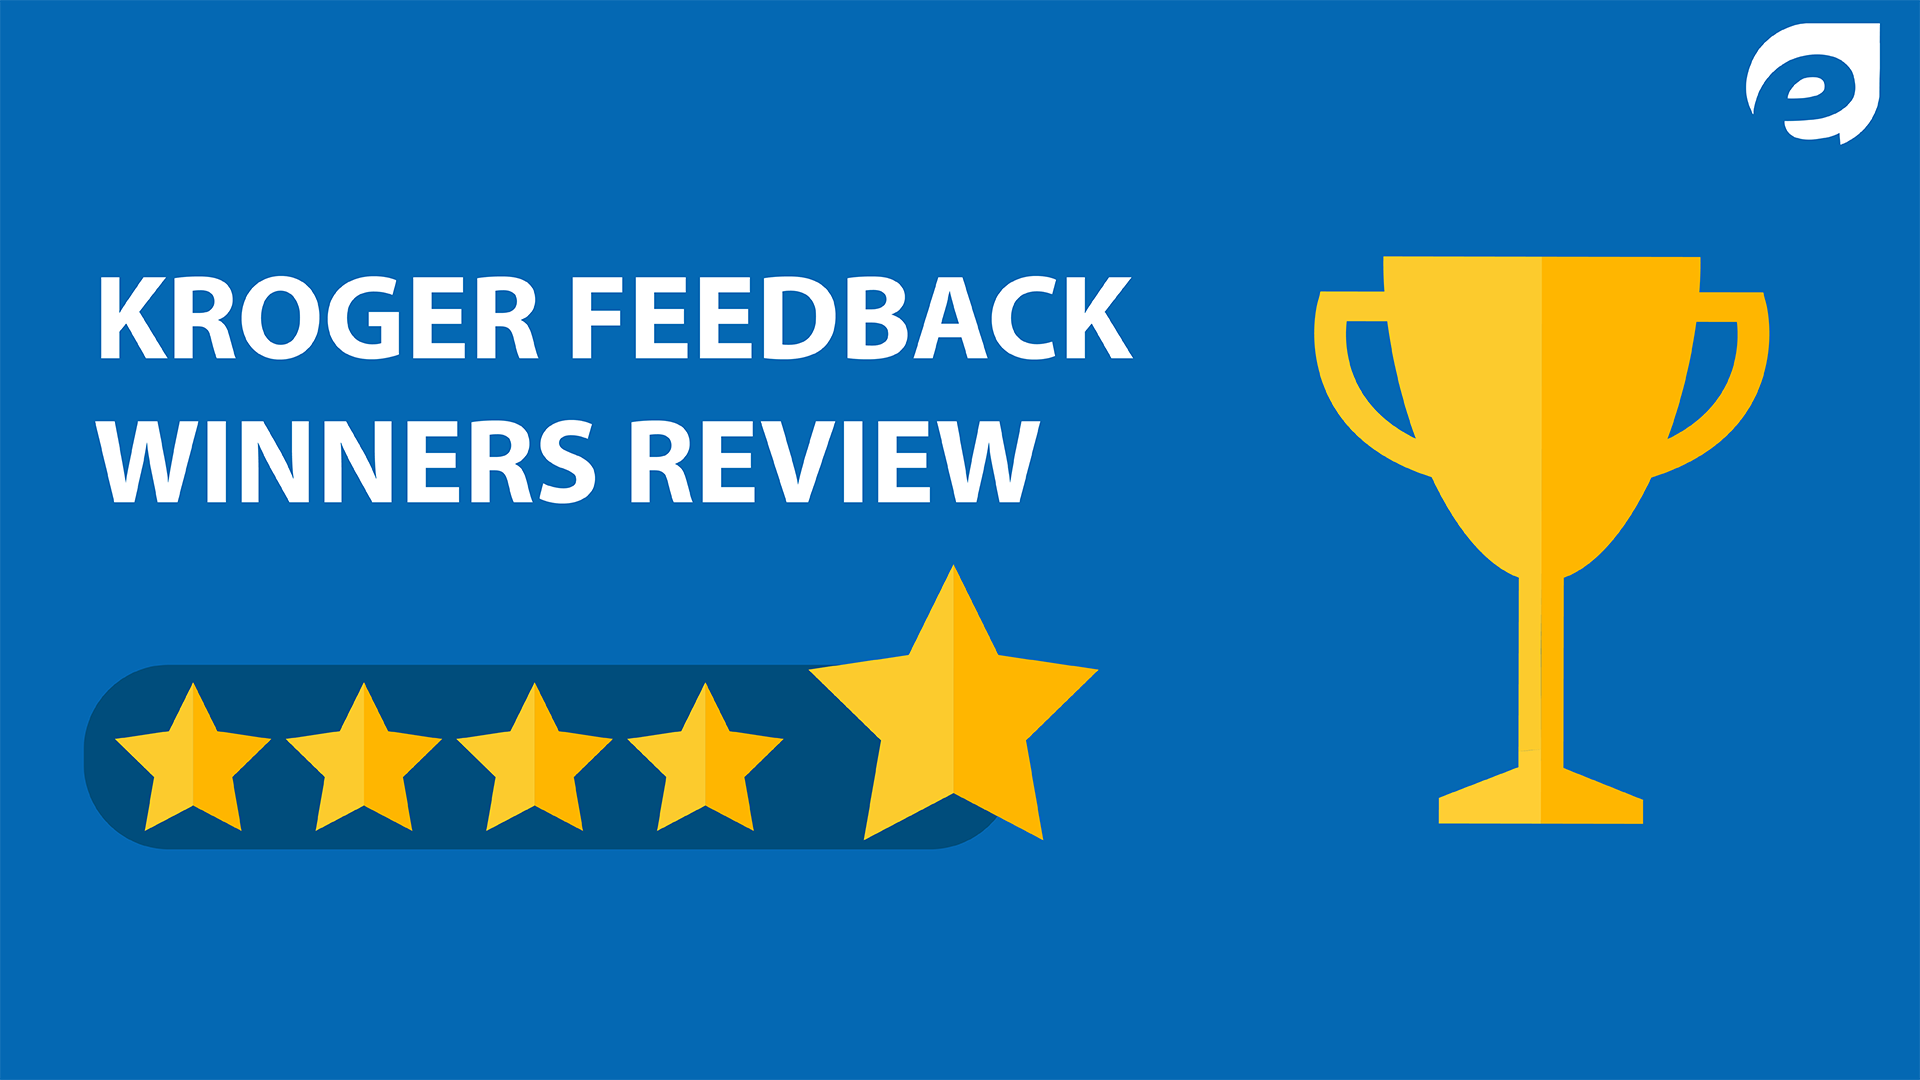 kroger feedback - winners reviews